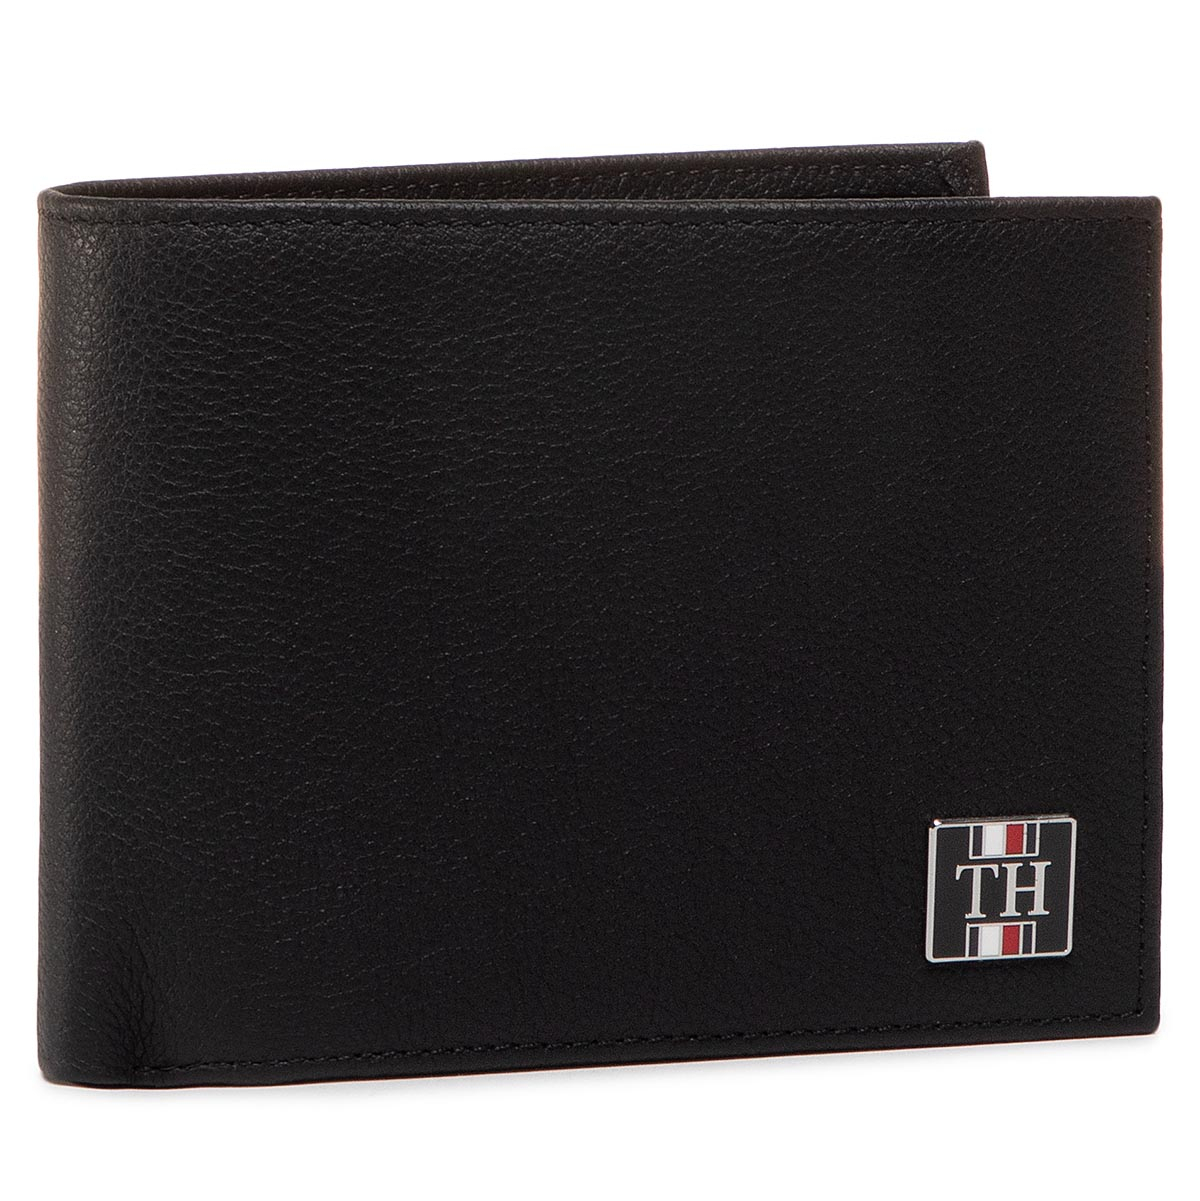 Portofel Mare pentru Bărbați TOMMY HILFIGER - Th Solid Cc Flap And Coin AM0AM05848 BDS